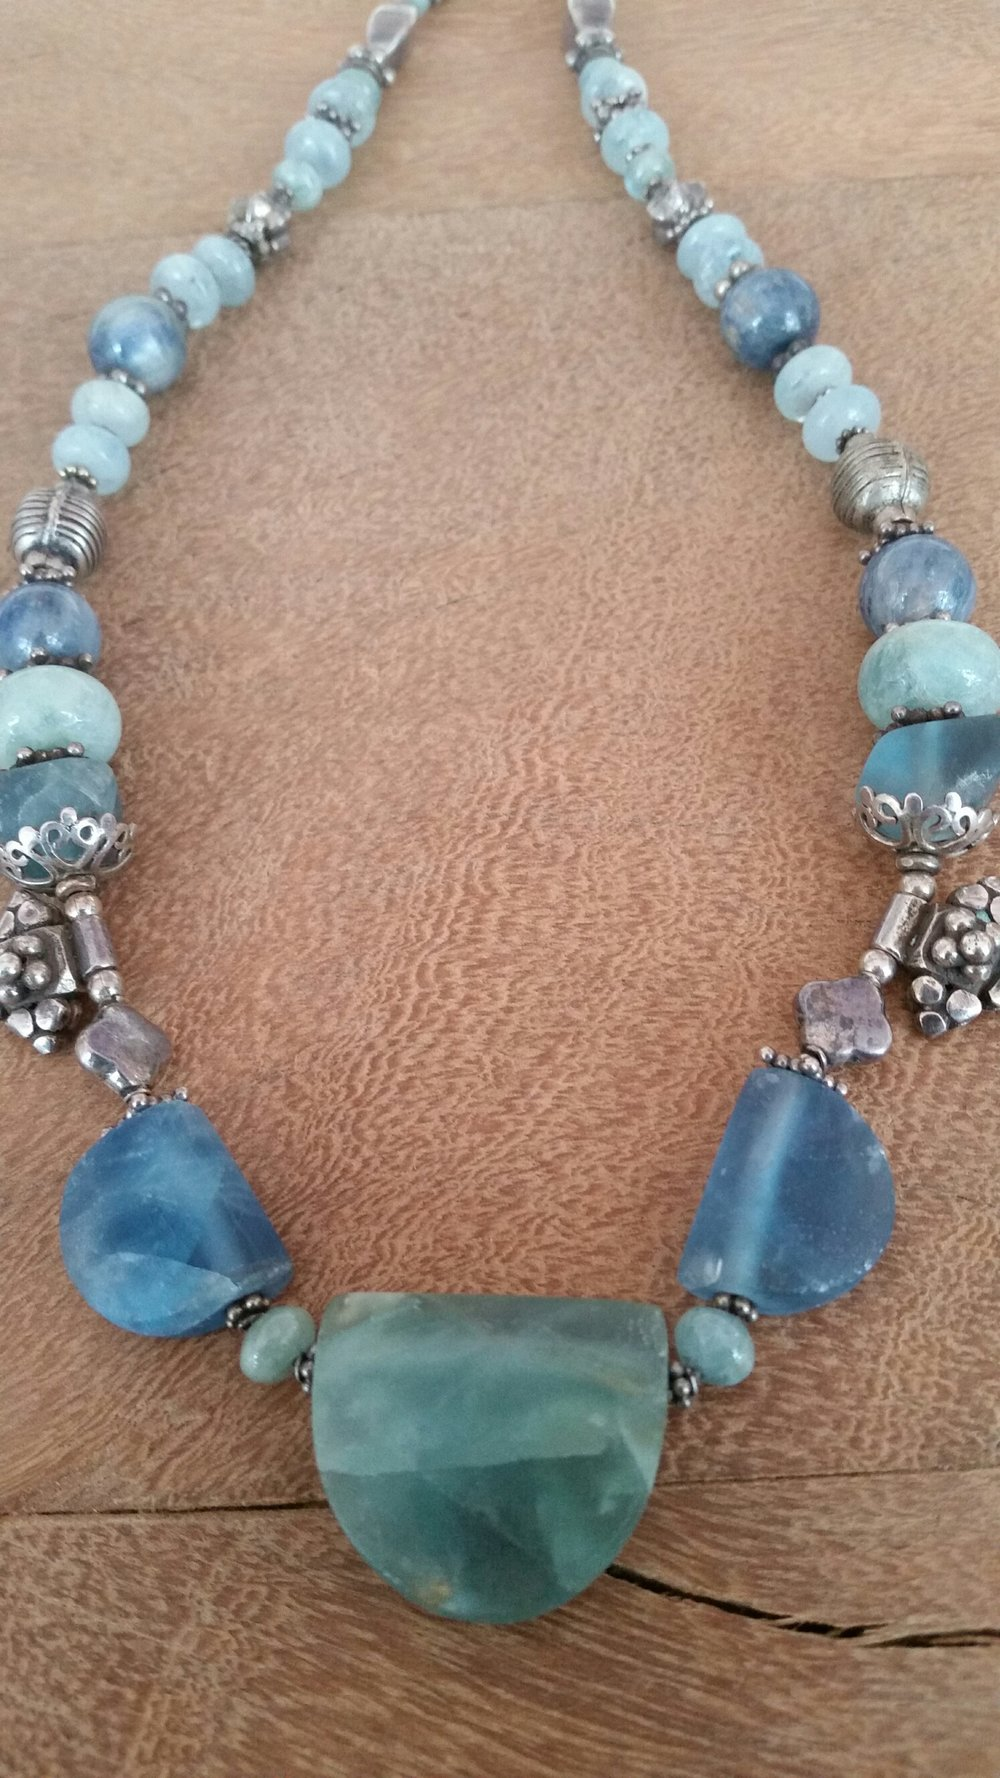 Title: Fluorite, Aquamarine & Kyanite Necklace #266